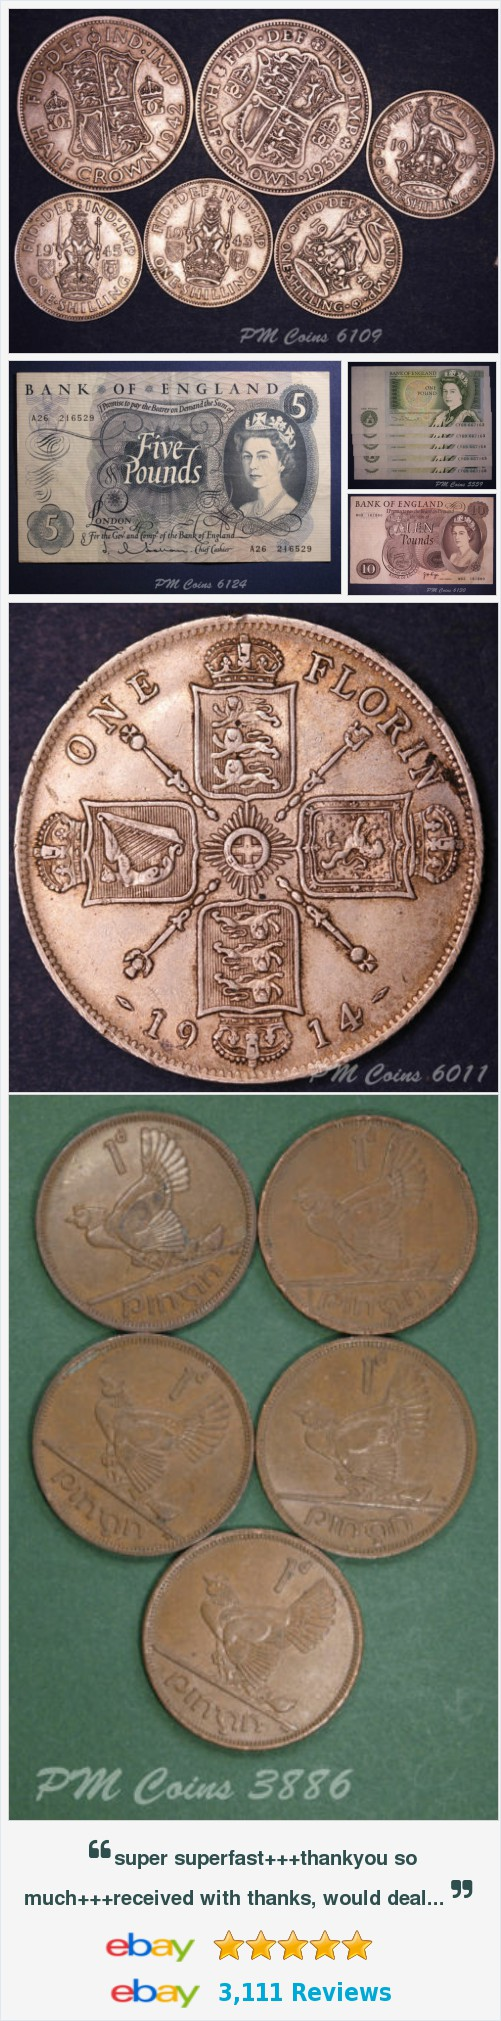 Ireland - Coins and Banknotes, UK Coins - Half Crowns items in PM Coin Shop store on eBay! http://stores.ebay.co.uk/PM-Coin-Shop/_i.html?rt=nc&_sid=1083015530&_trksid=p4634.c0.m14.l1581&_pgn=2